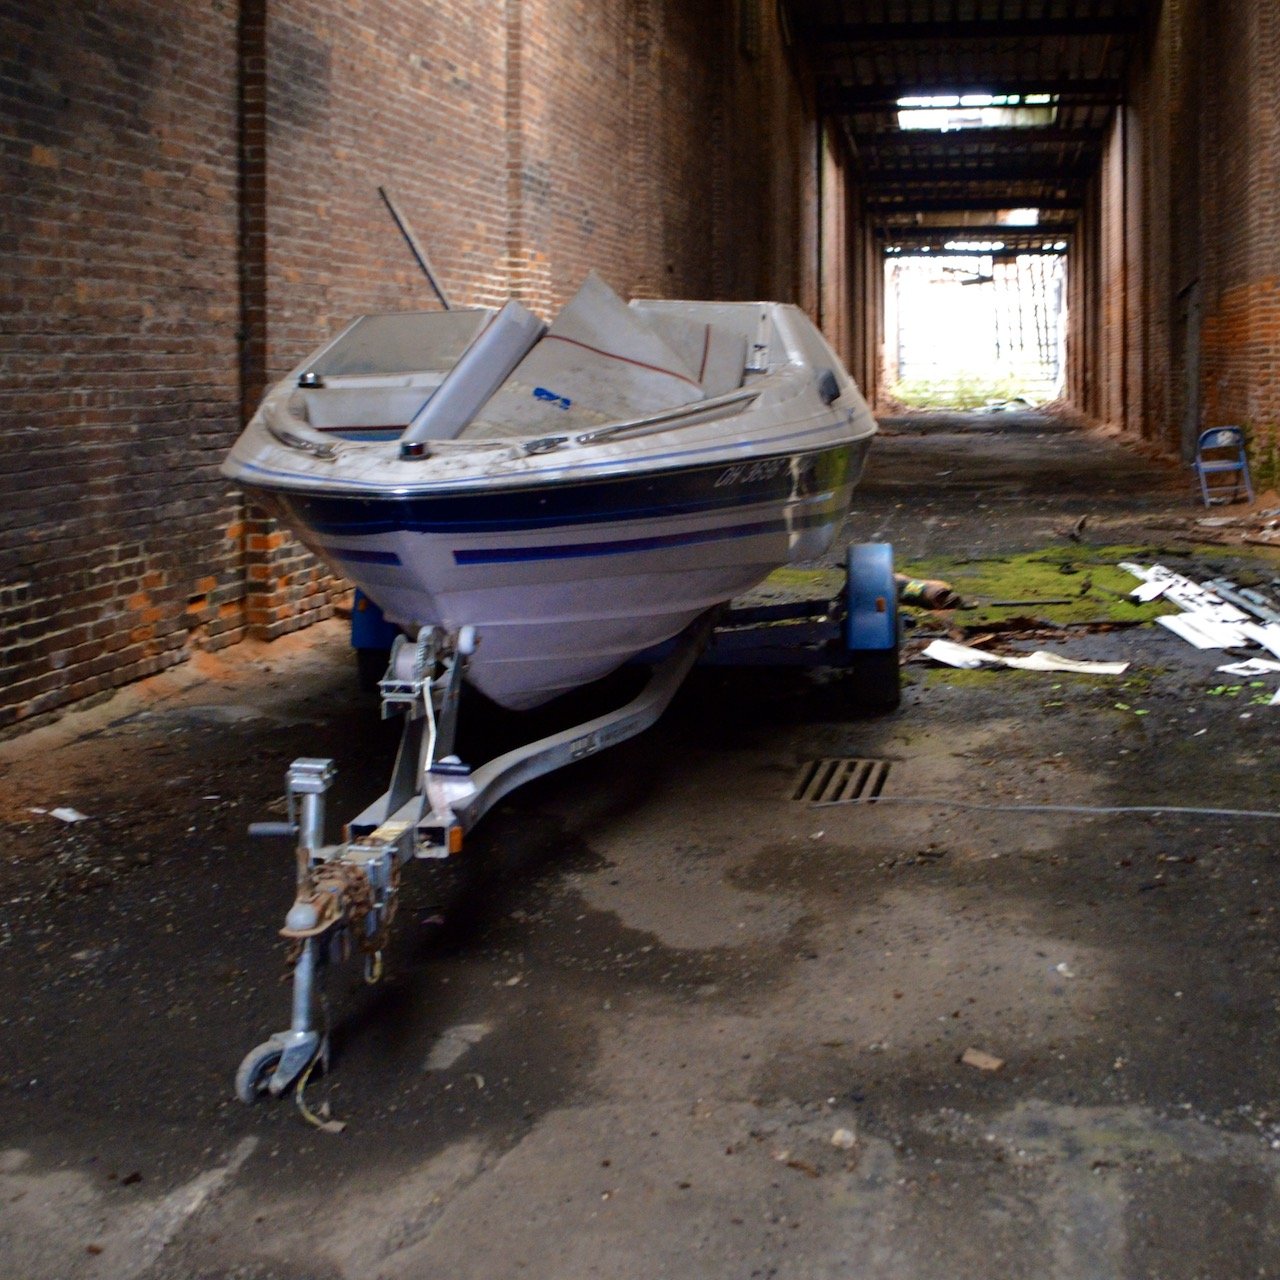 Abandoned-boat-in-storage